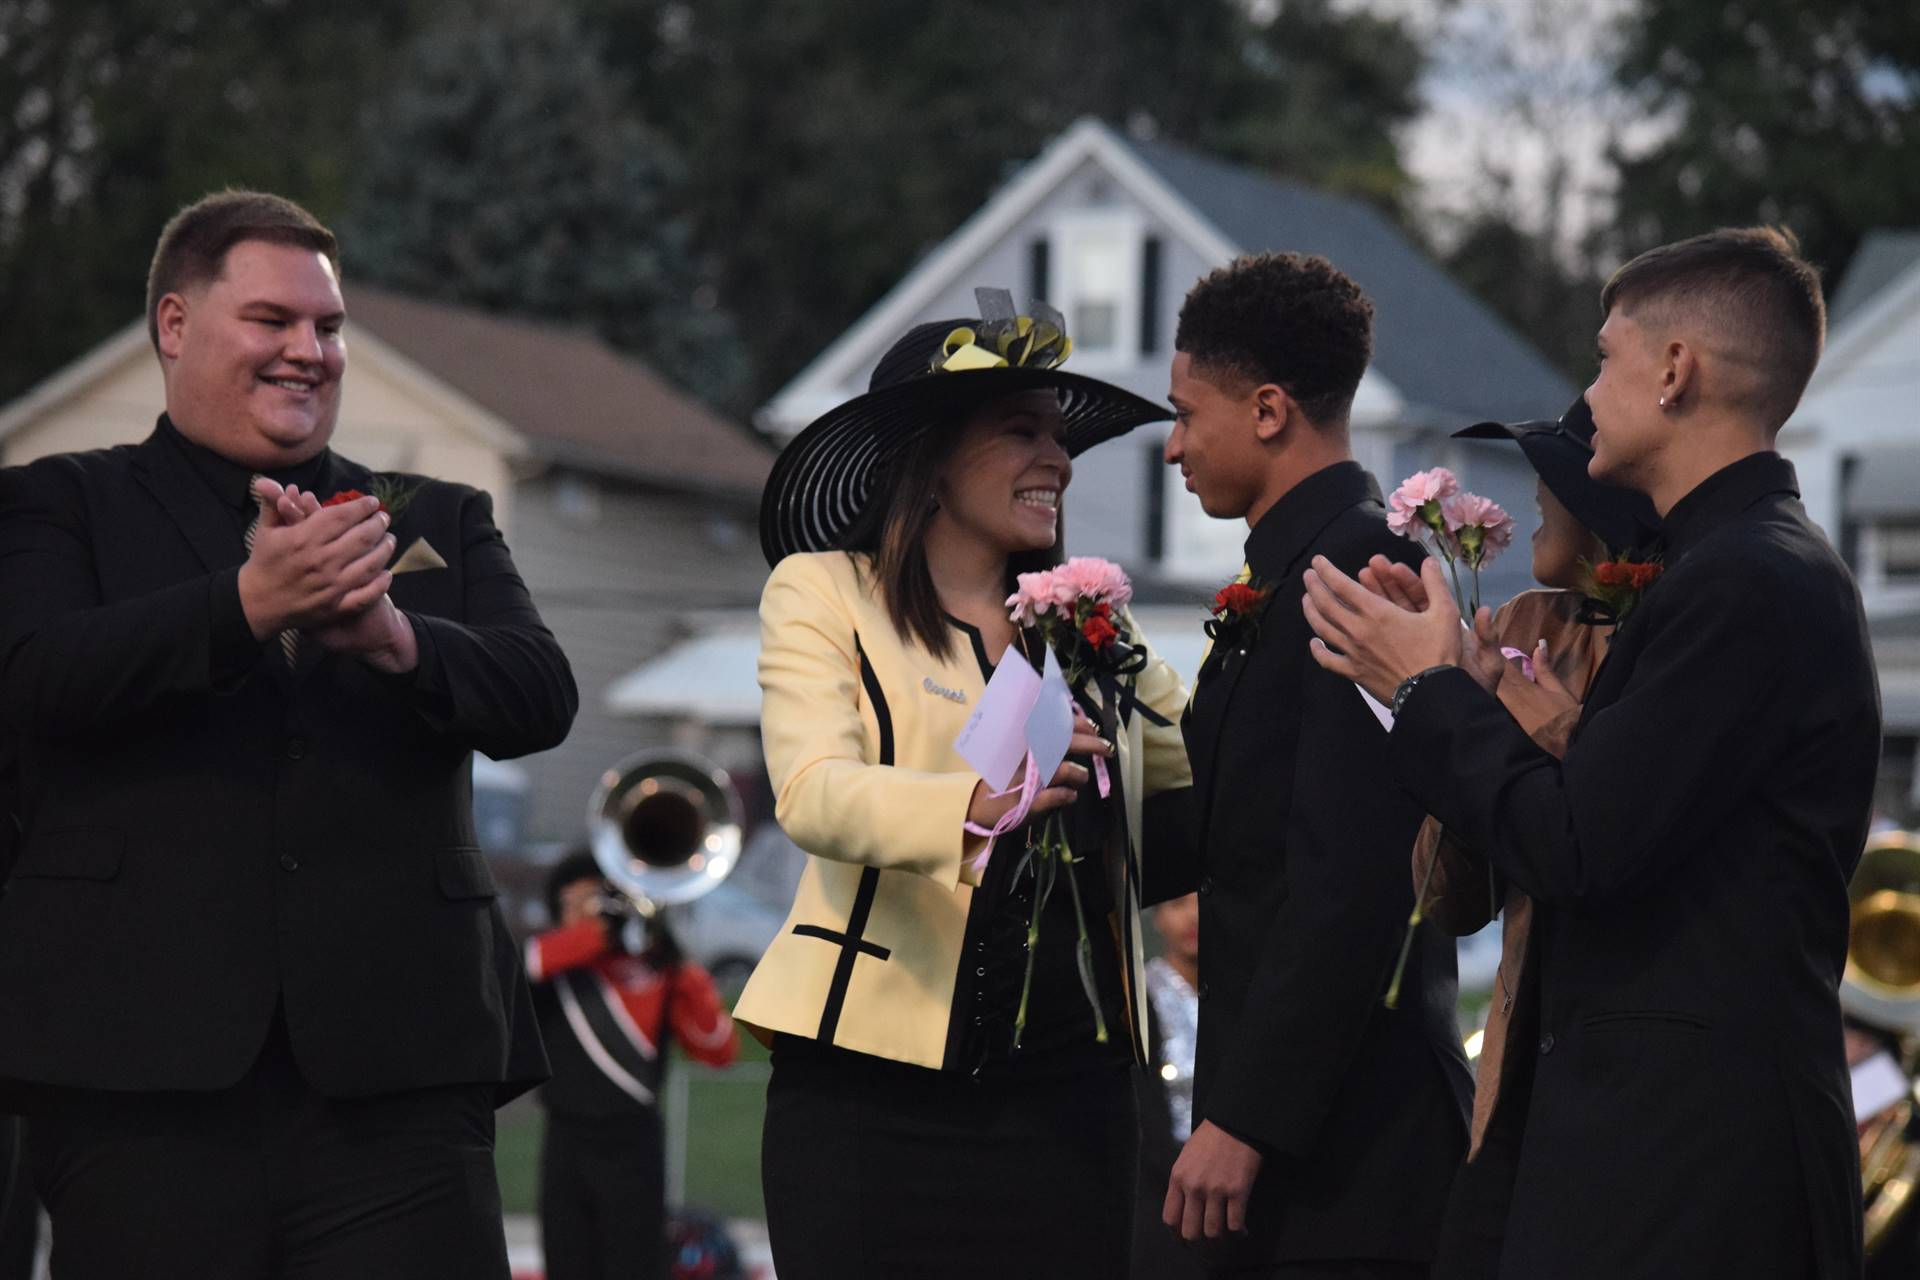 Mariah Shepherd is announced as the 2017 Homecoming Queen!